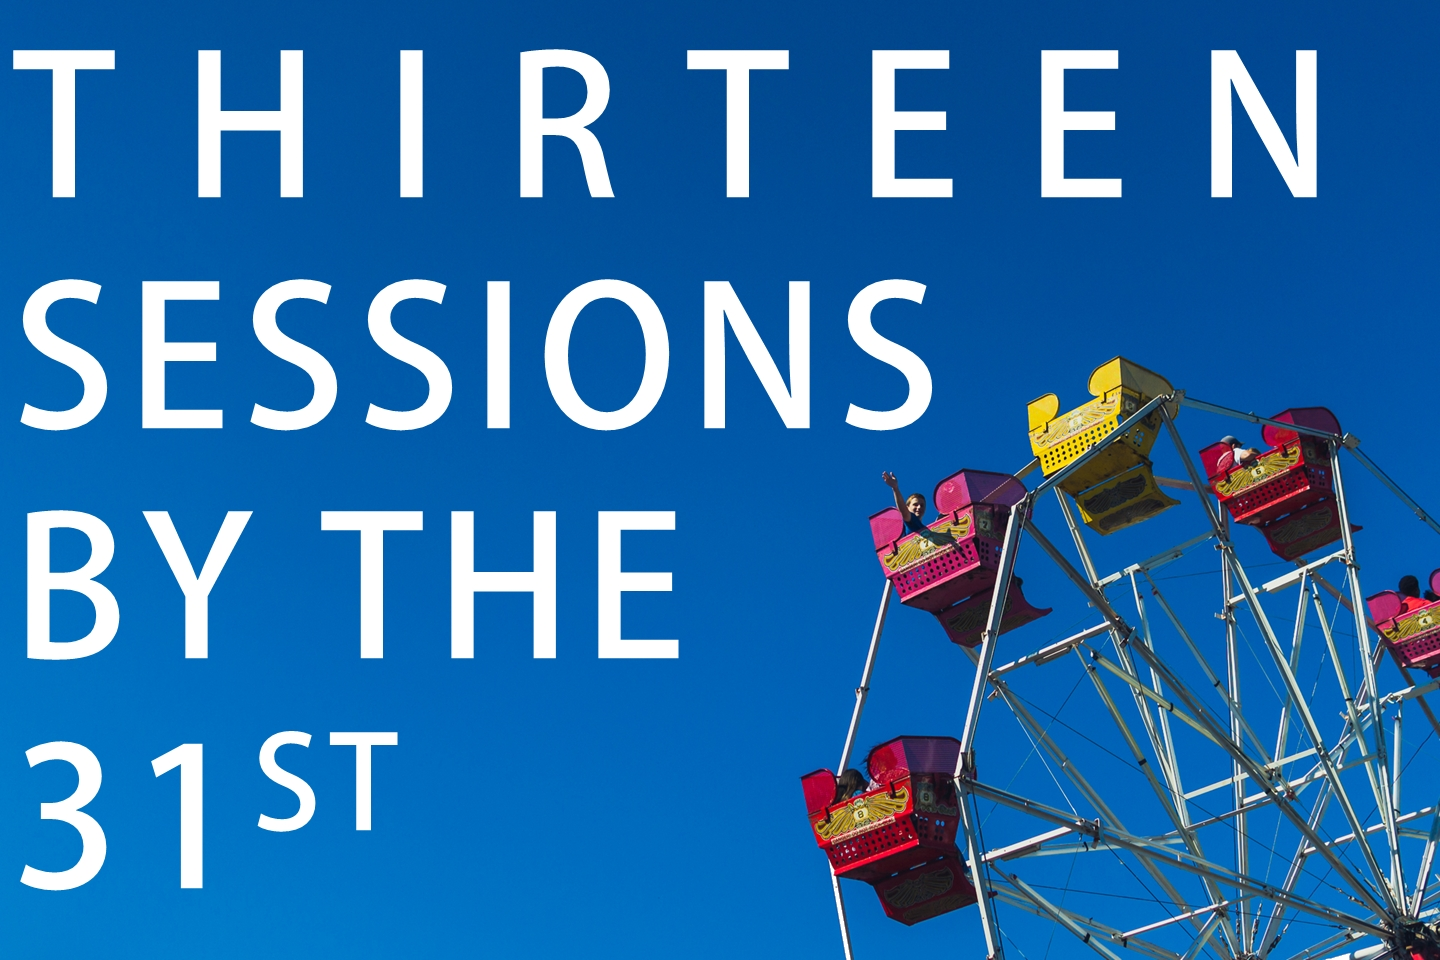 13 Sessions by the 31st